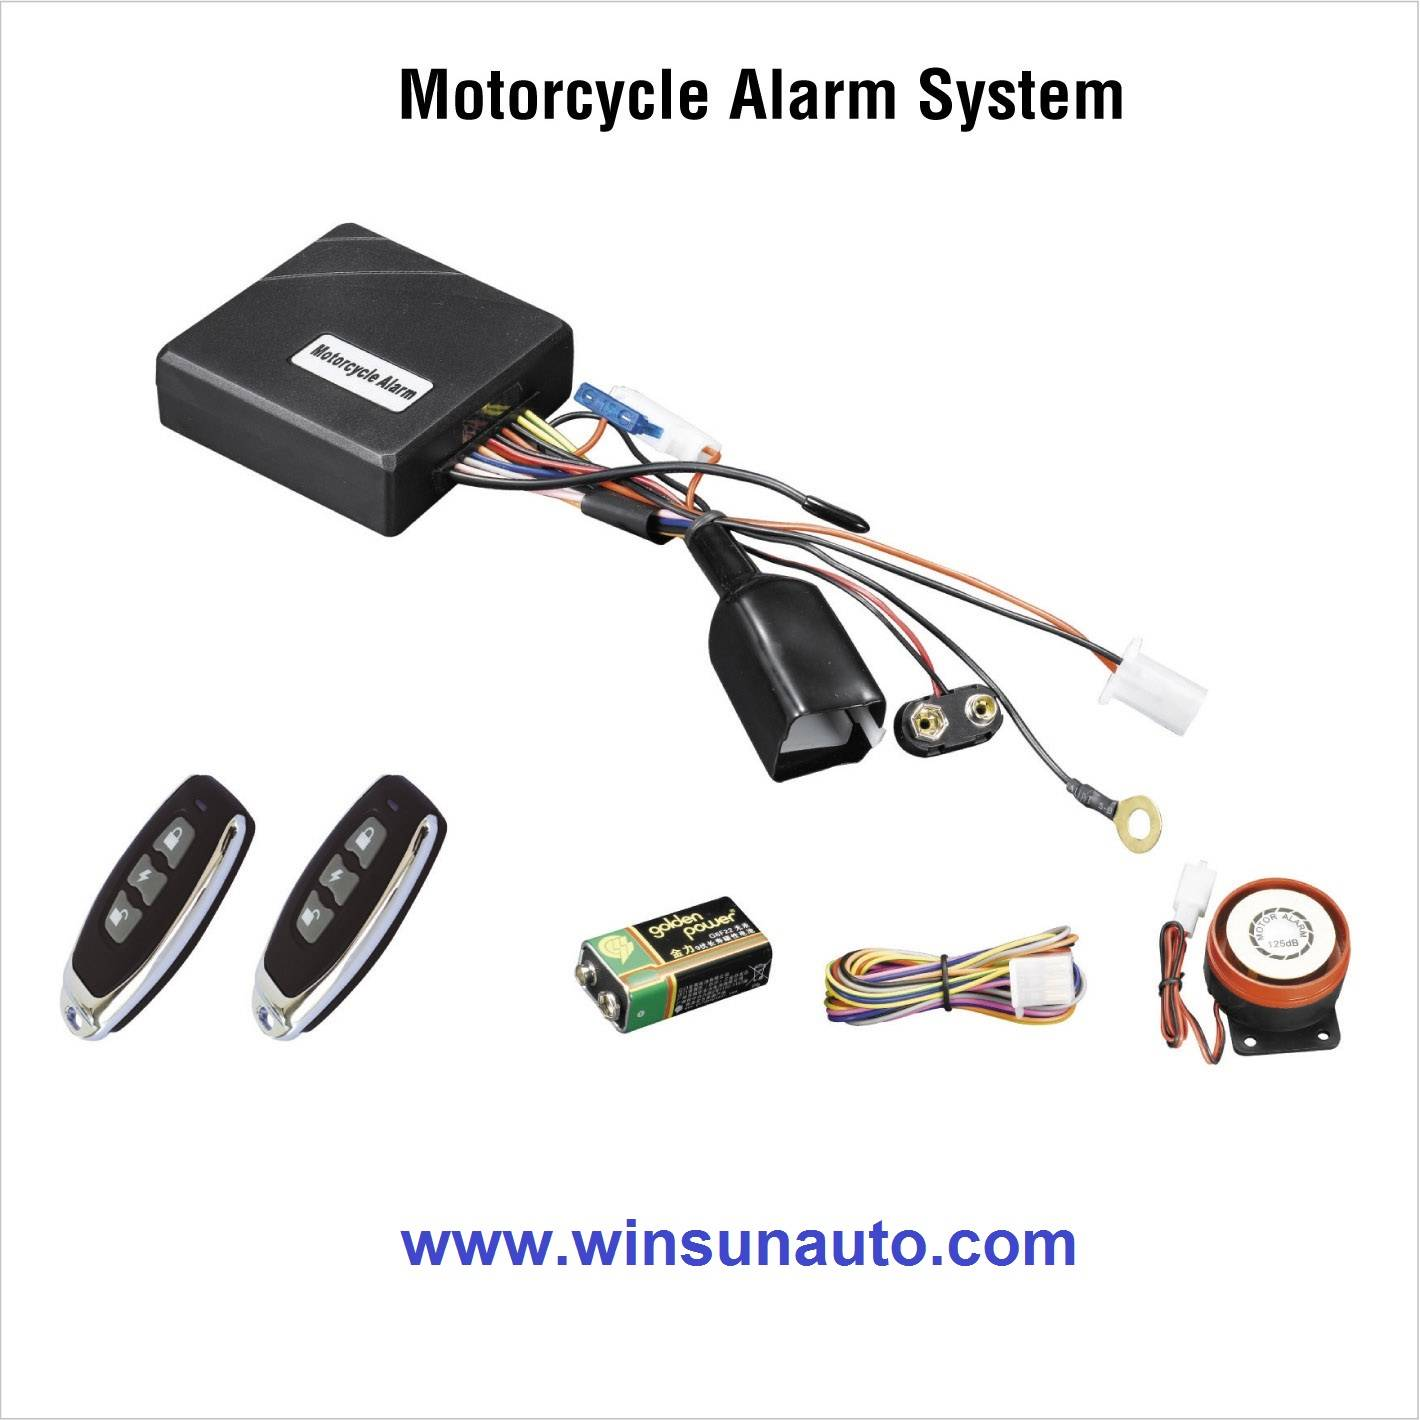 Motorcycle alarm with anti-wire cut